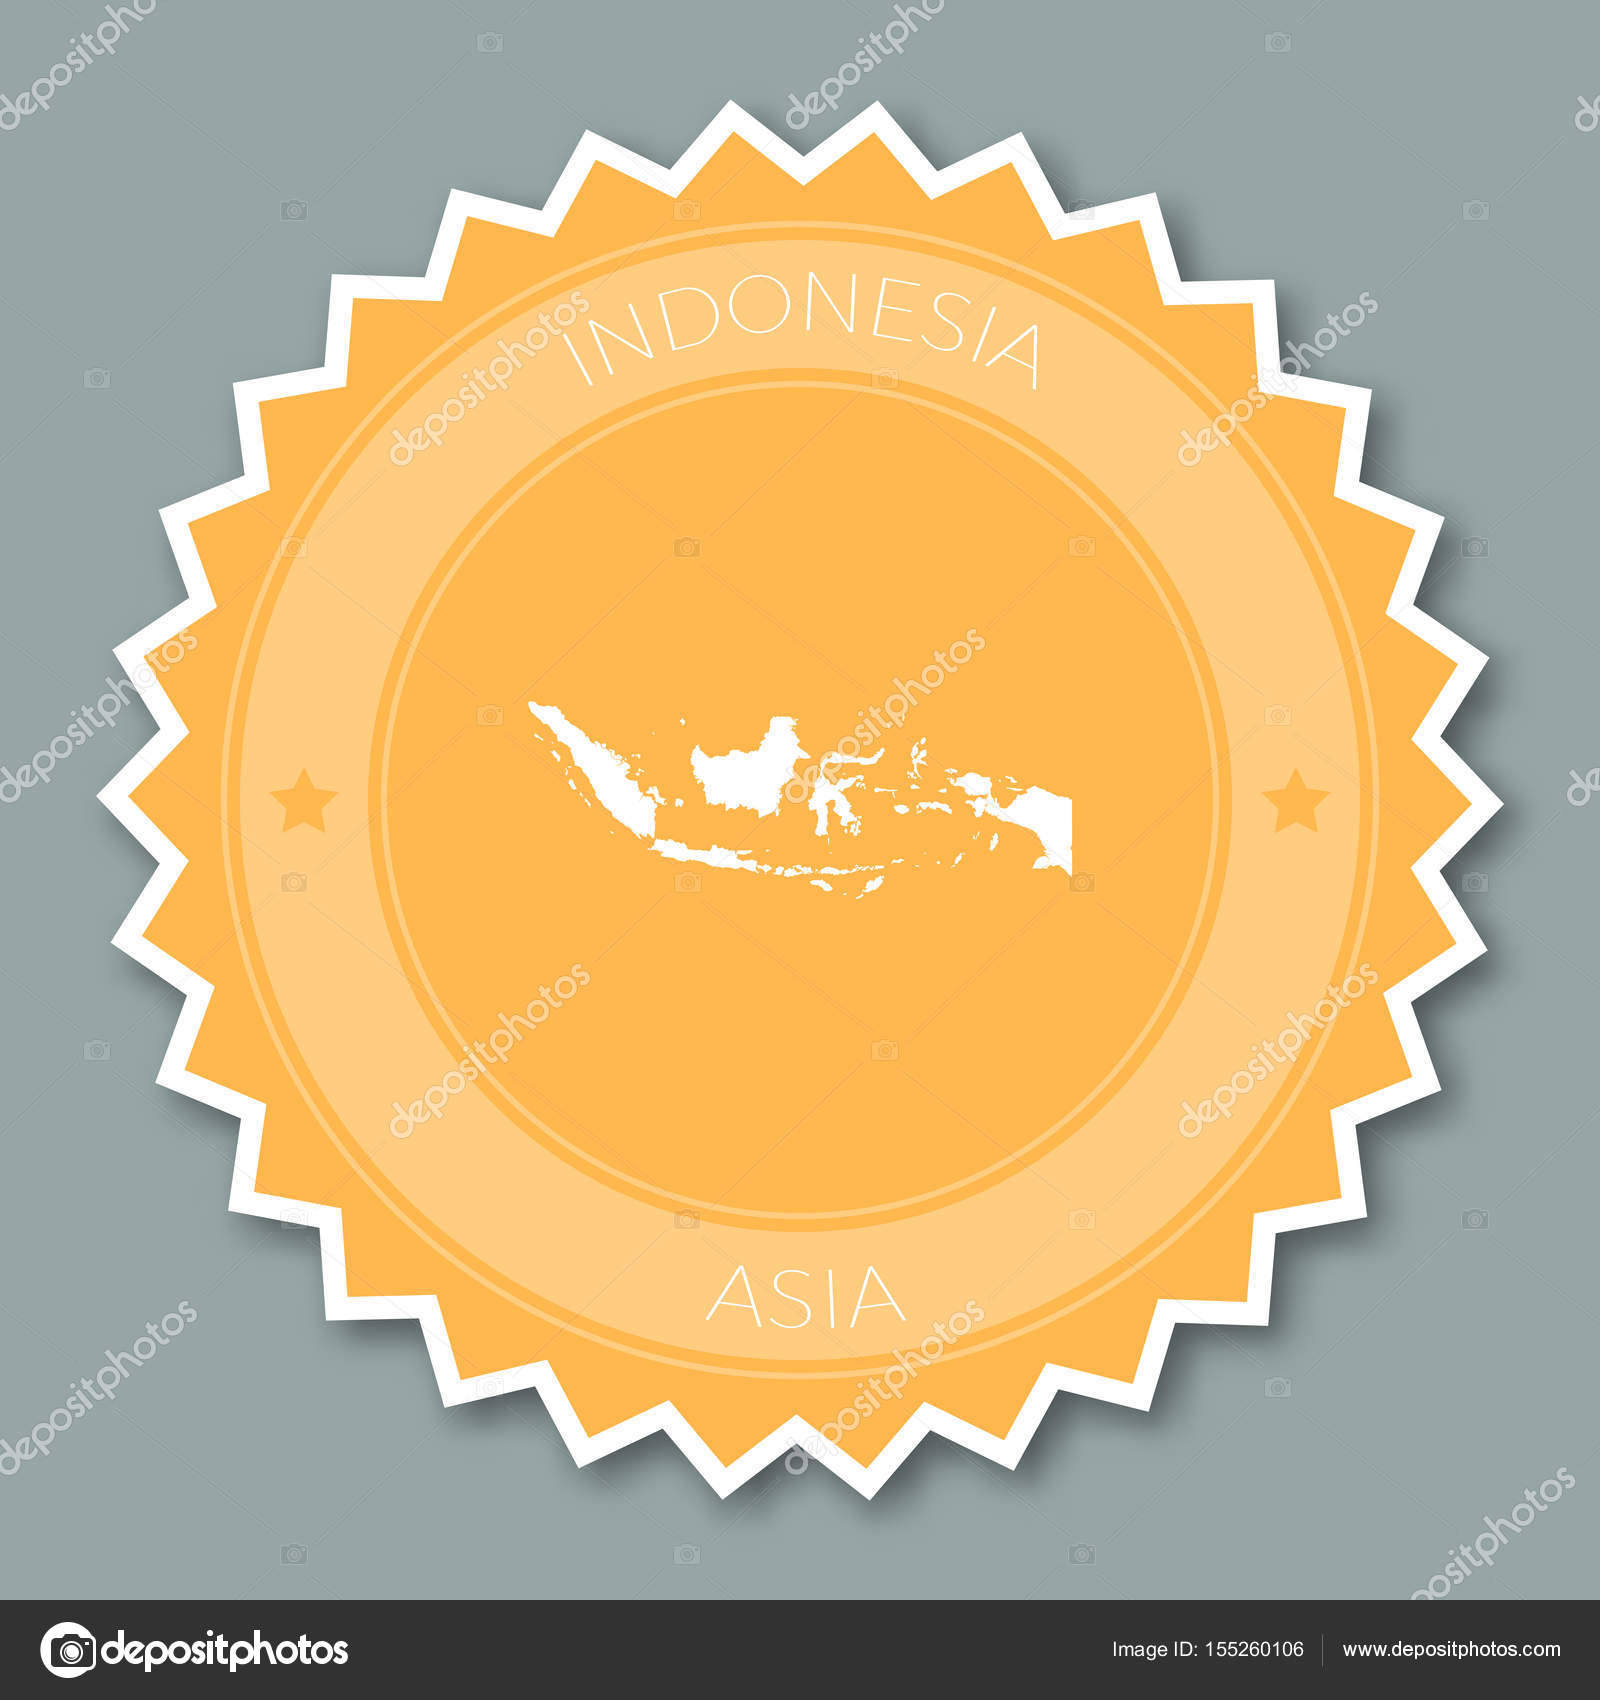 indonesia badge flat design round flat style sticker of trendy colors with country map and name stock vector c gagarych 155260106 https depositphotos com 155260106 stock illustration indonesia badge flat design round html